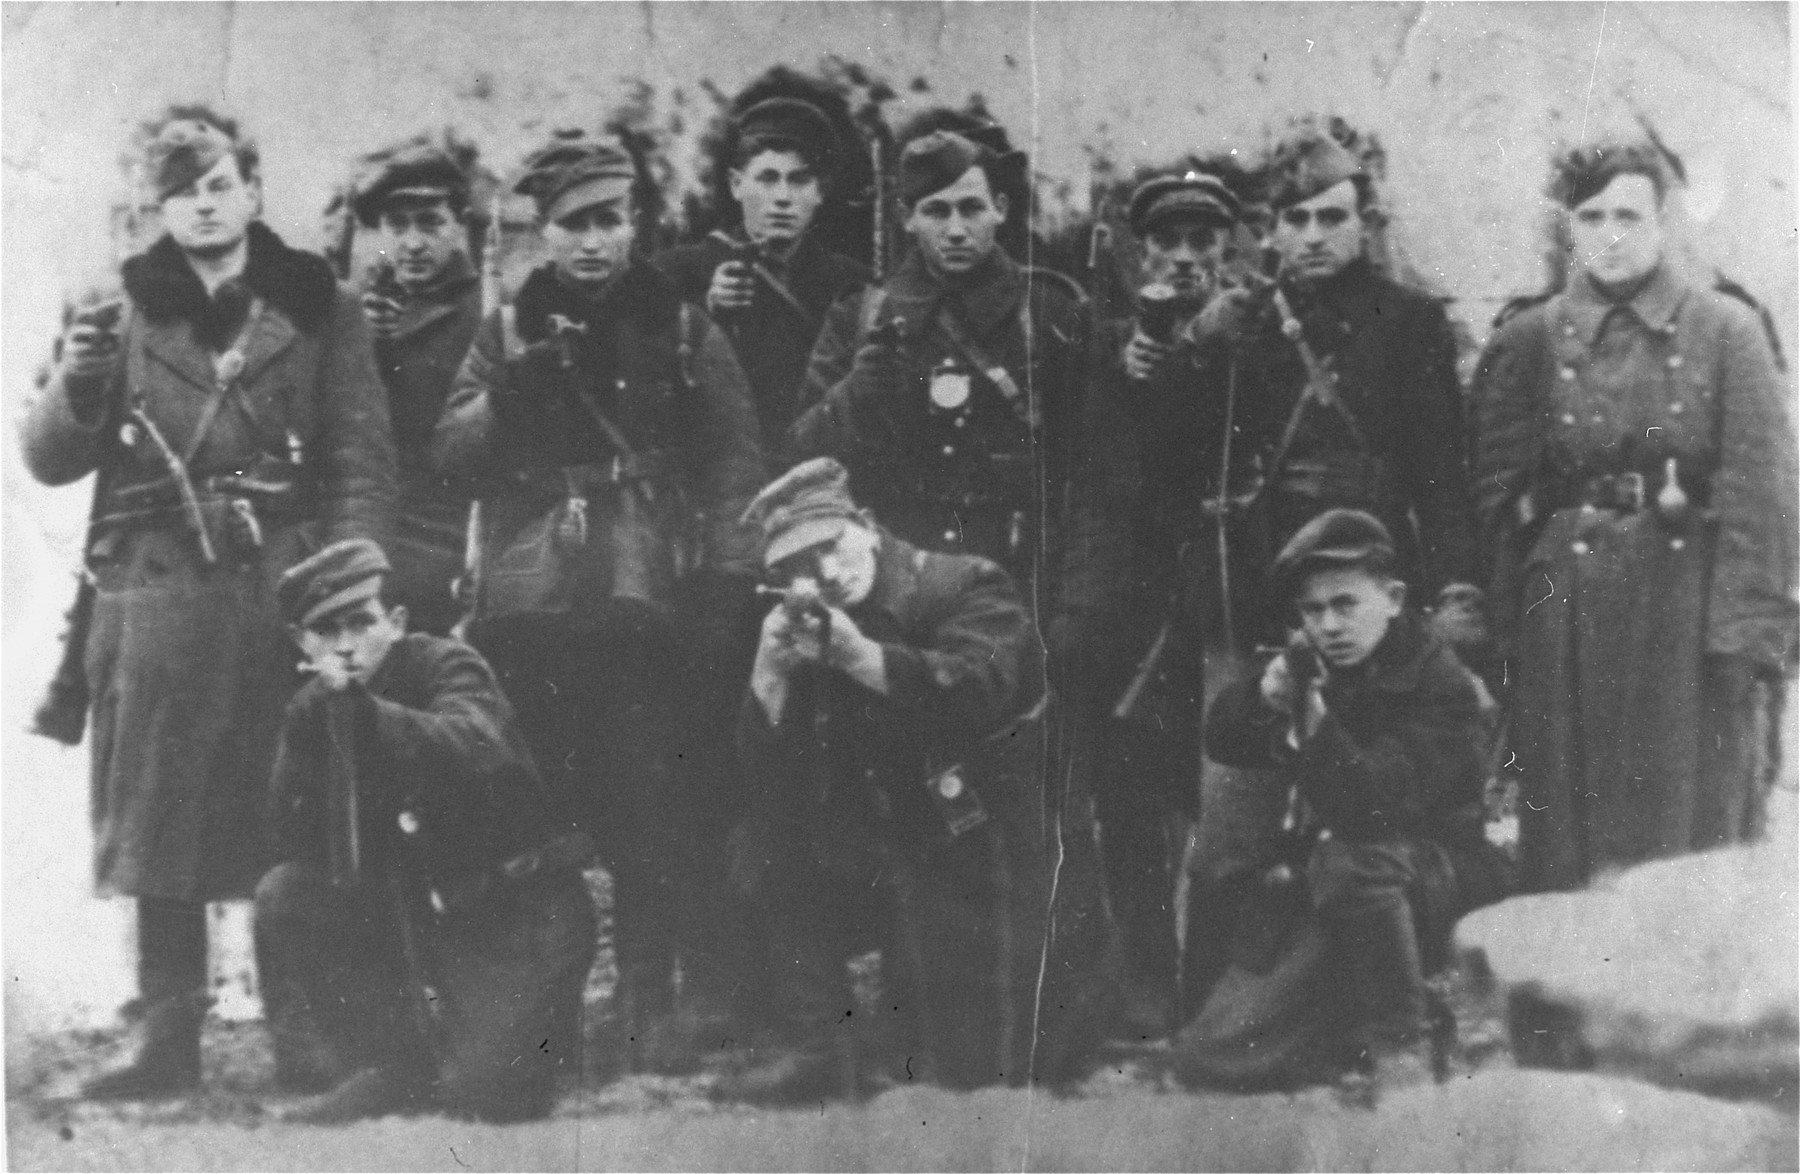 Group portrait of members of the Jewish partisan unit commanded by Yehiel Grynszpan in the Parczew Forest.    Standing from left to right are: Dudkin Rubinstein, Jurek Pomeranc, Lonka Pfefferkorn, Lova ?, and Yehiel Grynszpan.  Kneeling at the right is Pacan Rubinstein.